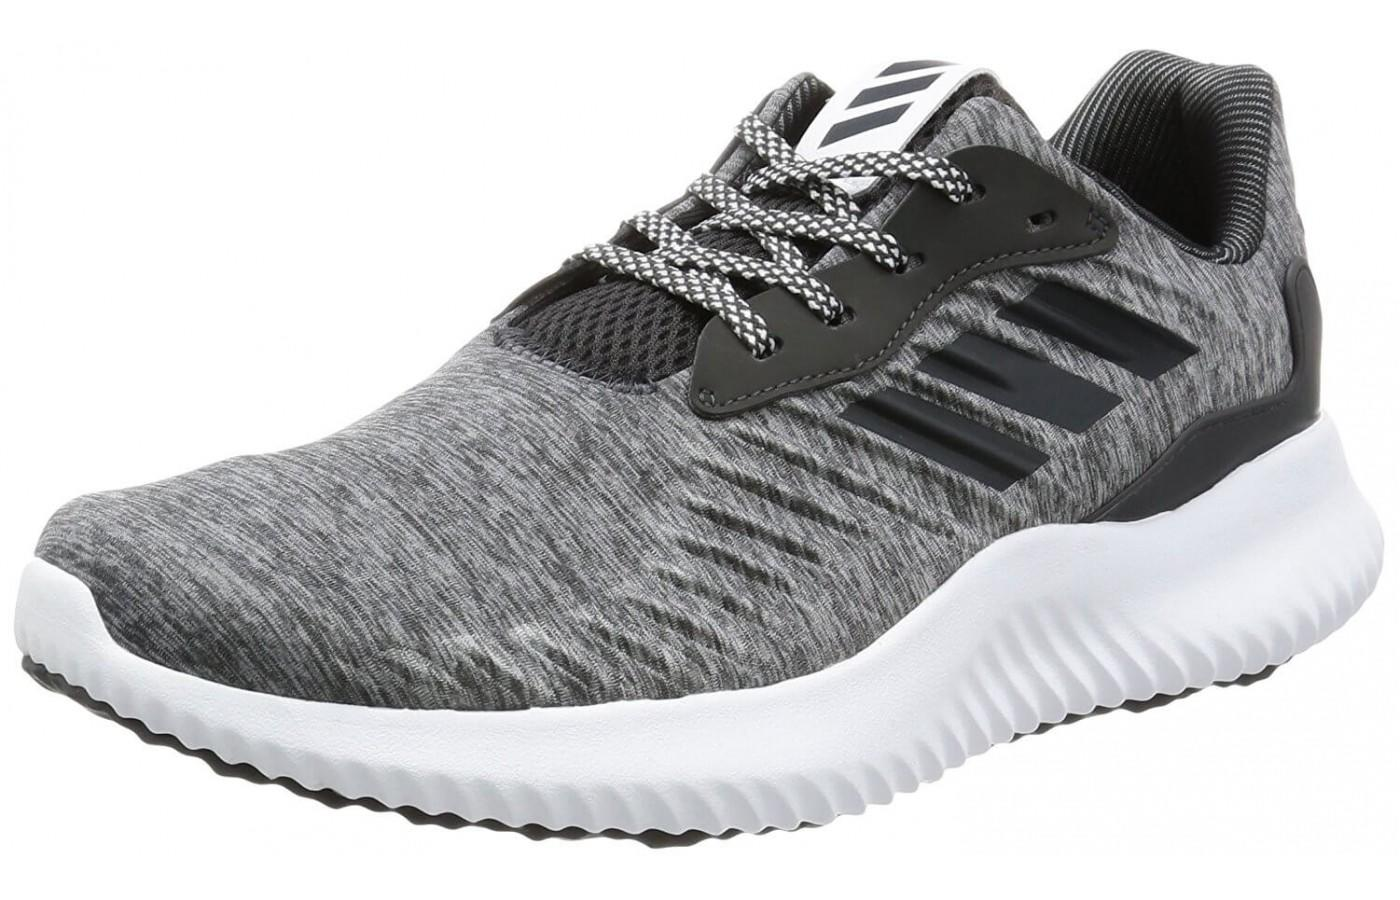 e0734c515 Adidas Alphabounce RC Review - Buy or Not in May 2019